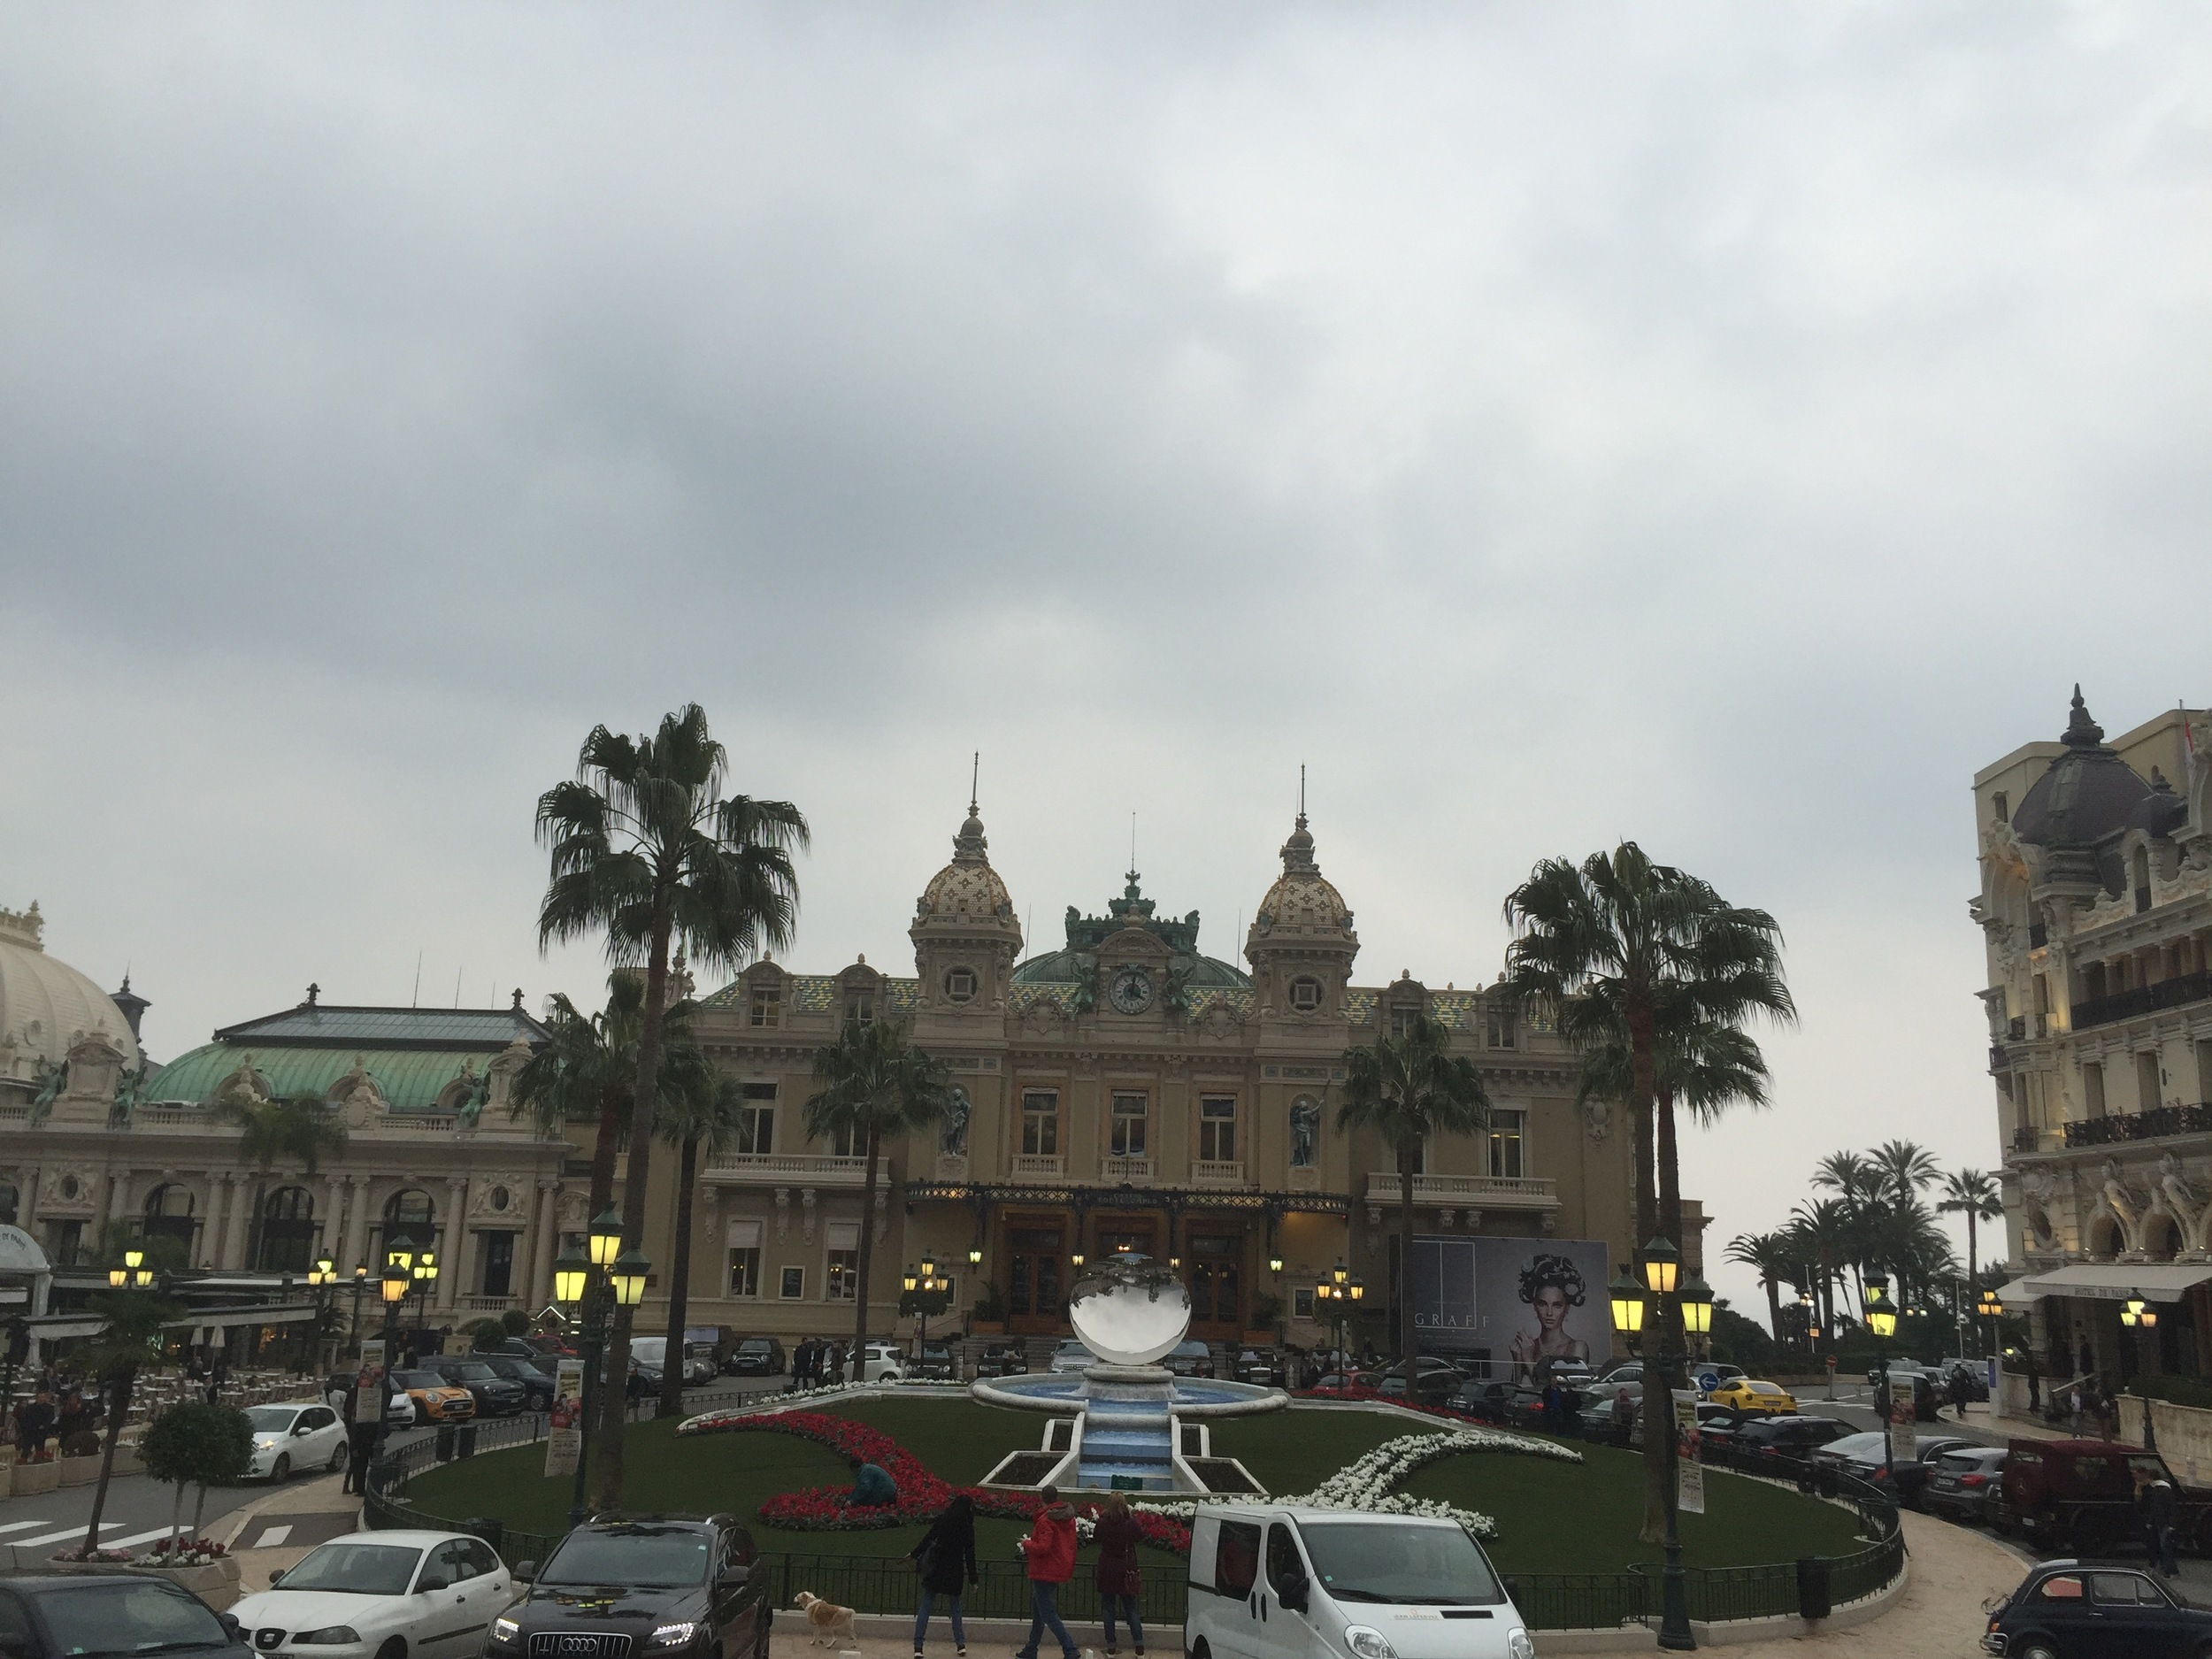 The Casino Monte-Carlo from the outside. Dope, right? At least the weather cooperated long enough for me to snap this. Photo by Max Siskind.